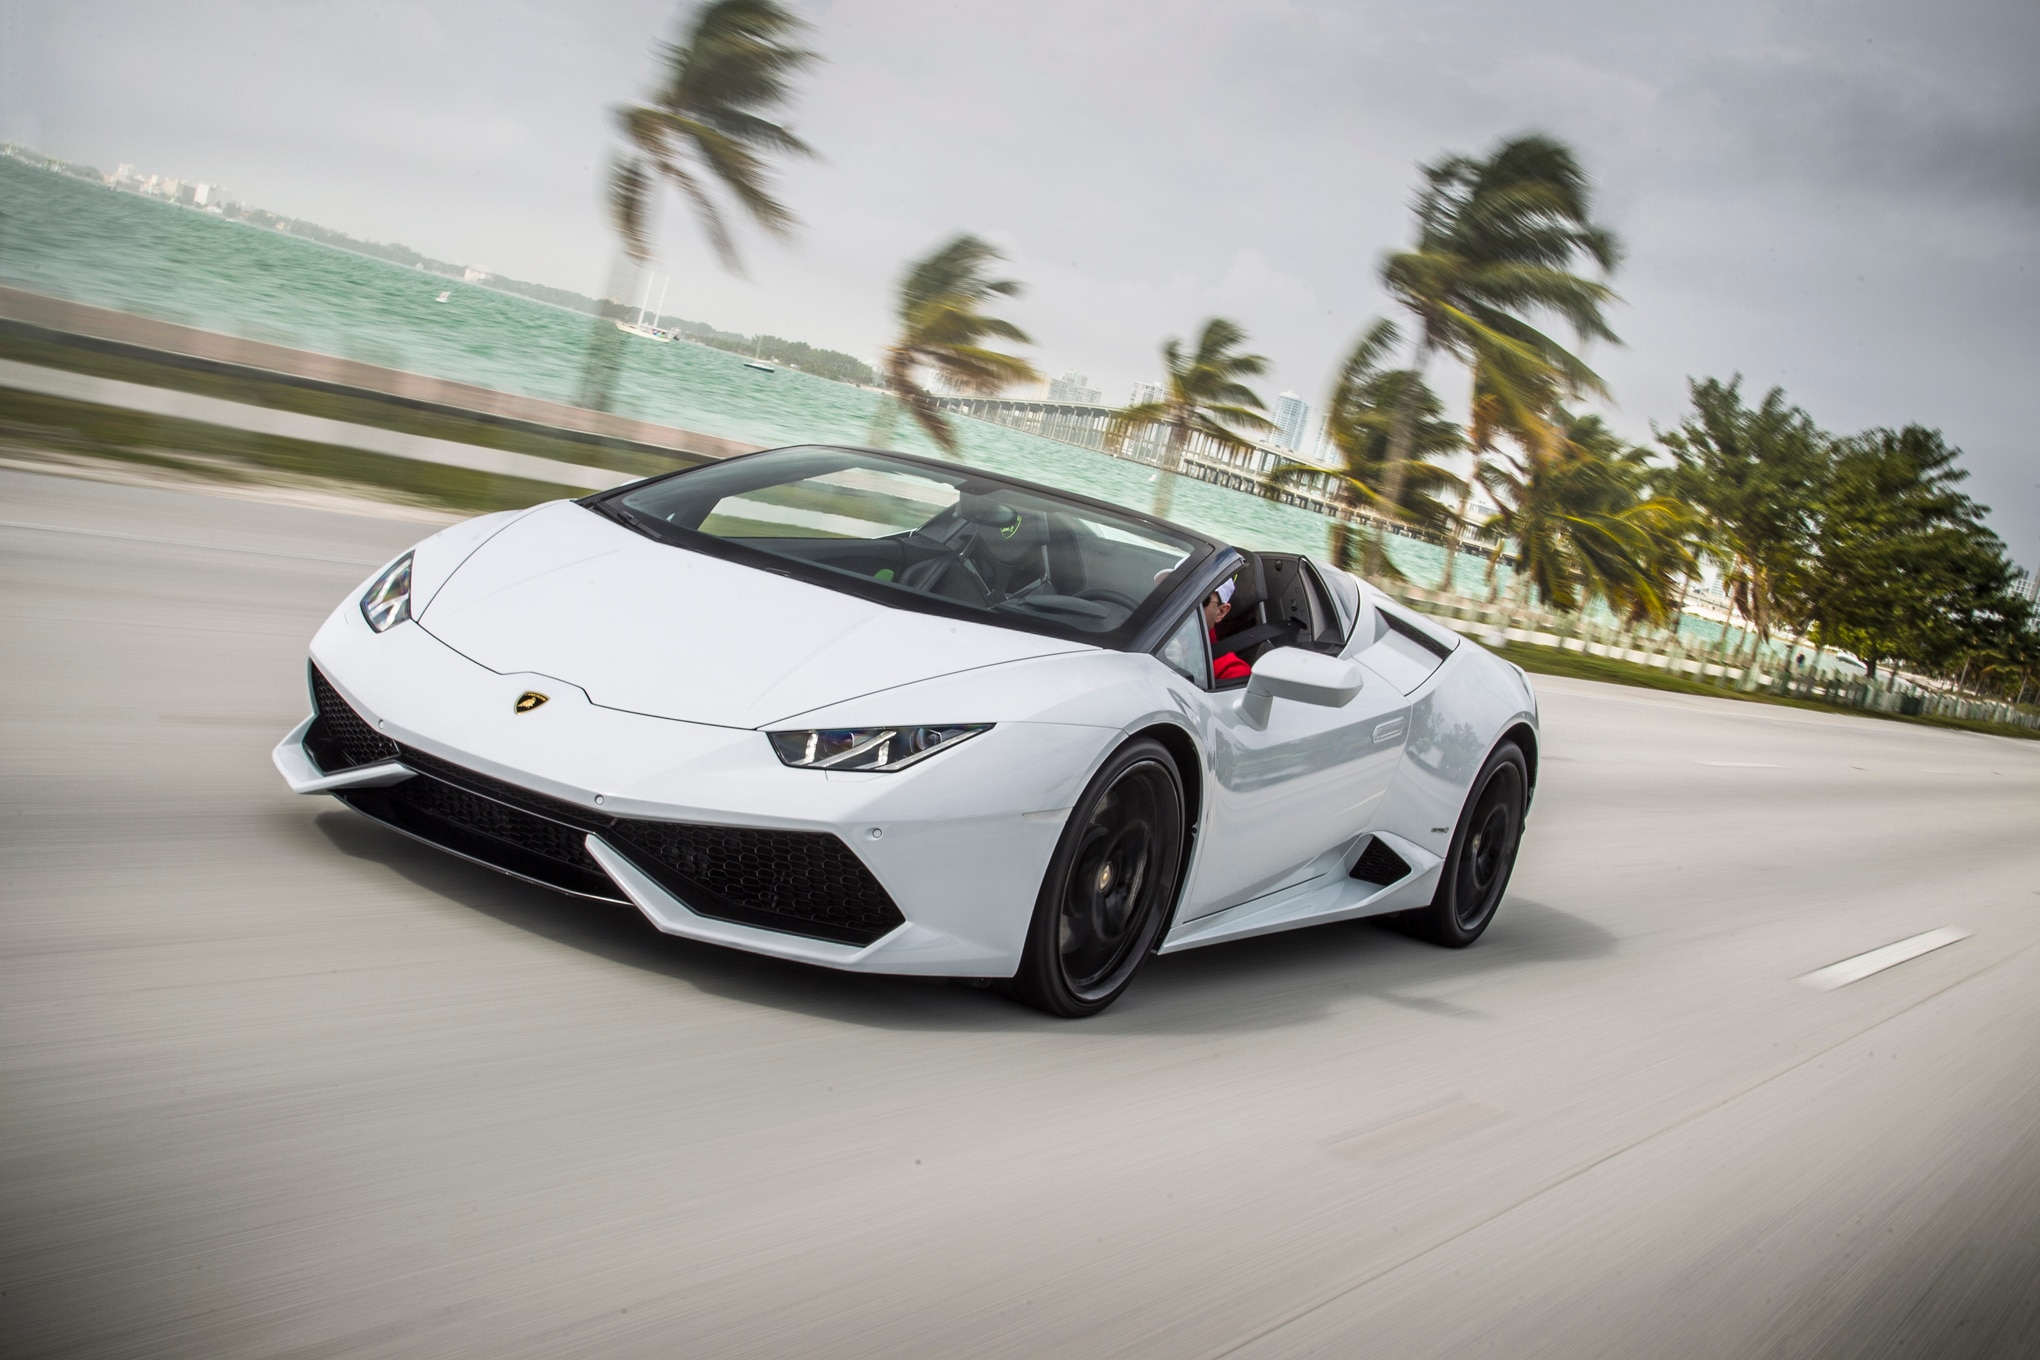 2016 Lamborghini Huracan Spyder Front Three Quarter In Motion 13 1